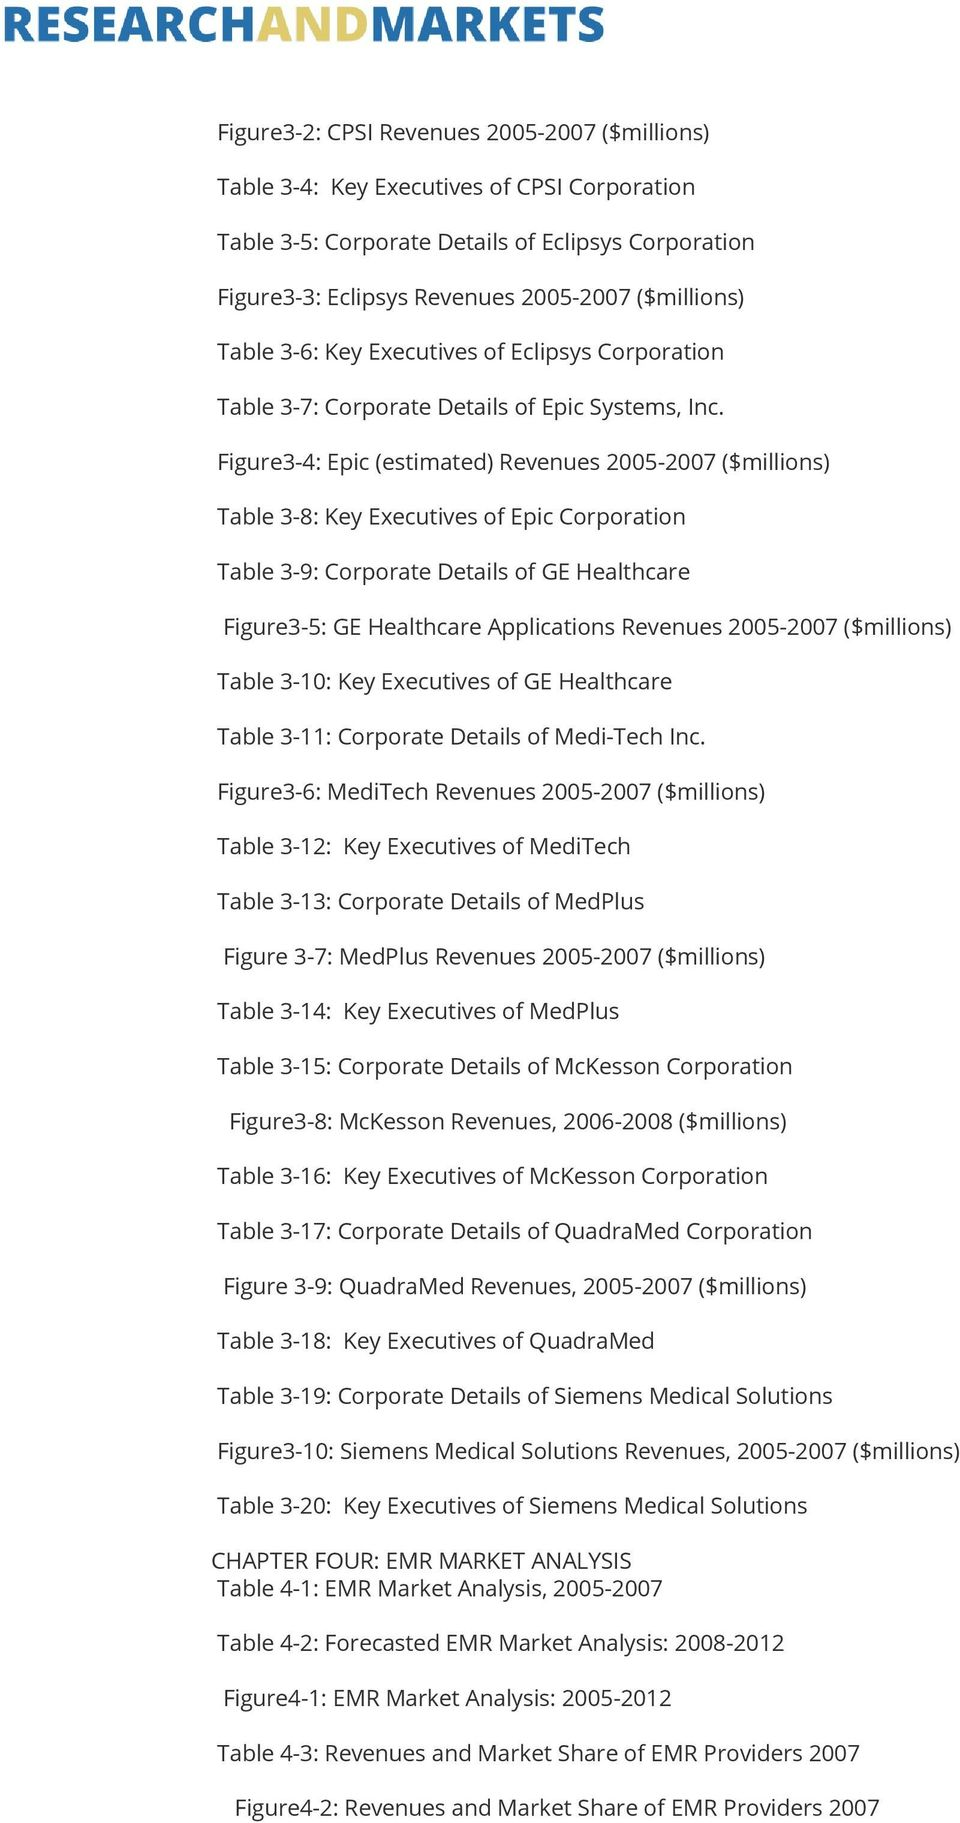 Figure3-4: Epic (estimated) Revenues 2005-2007 ($millions) Table 3-8: of Epic Corporation Table 3-9: Corporate Details of GE Healthcare Figure3-5: GE Healthcare Applications Revenues 2005-2007